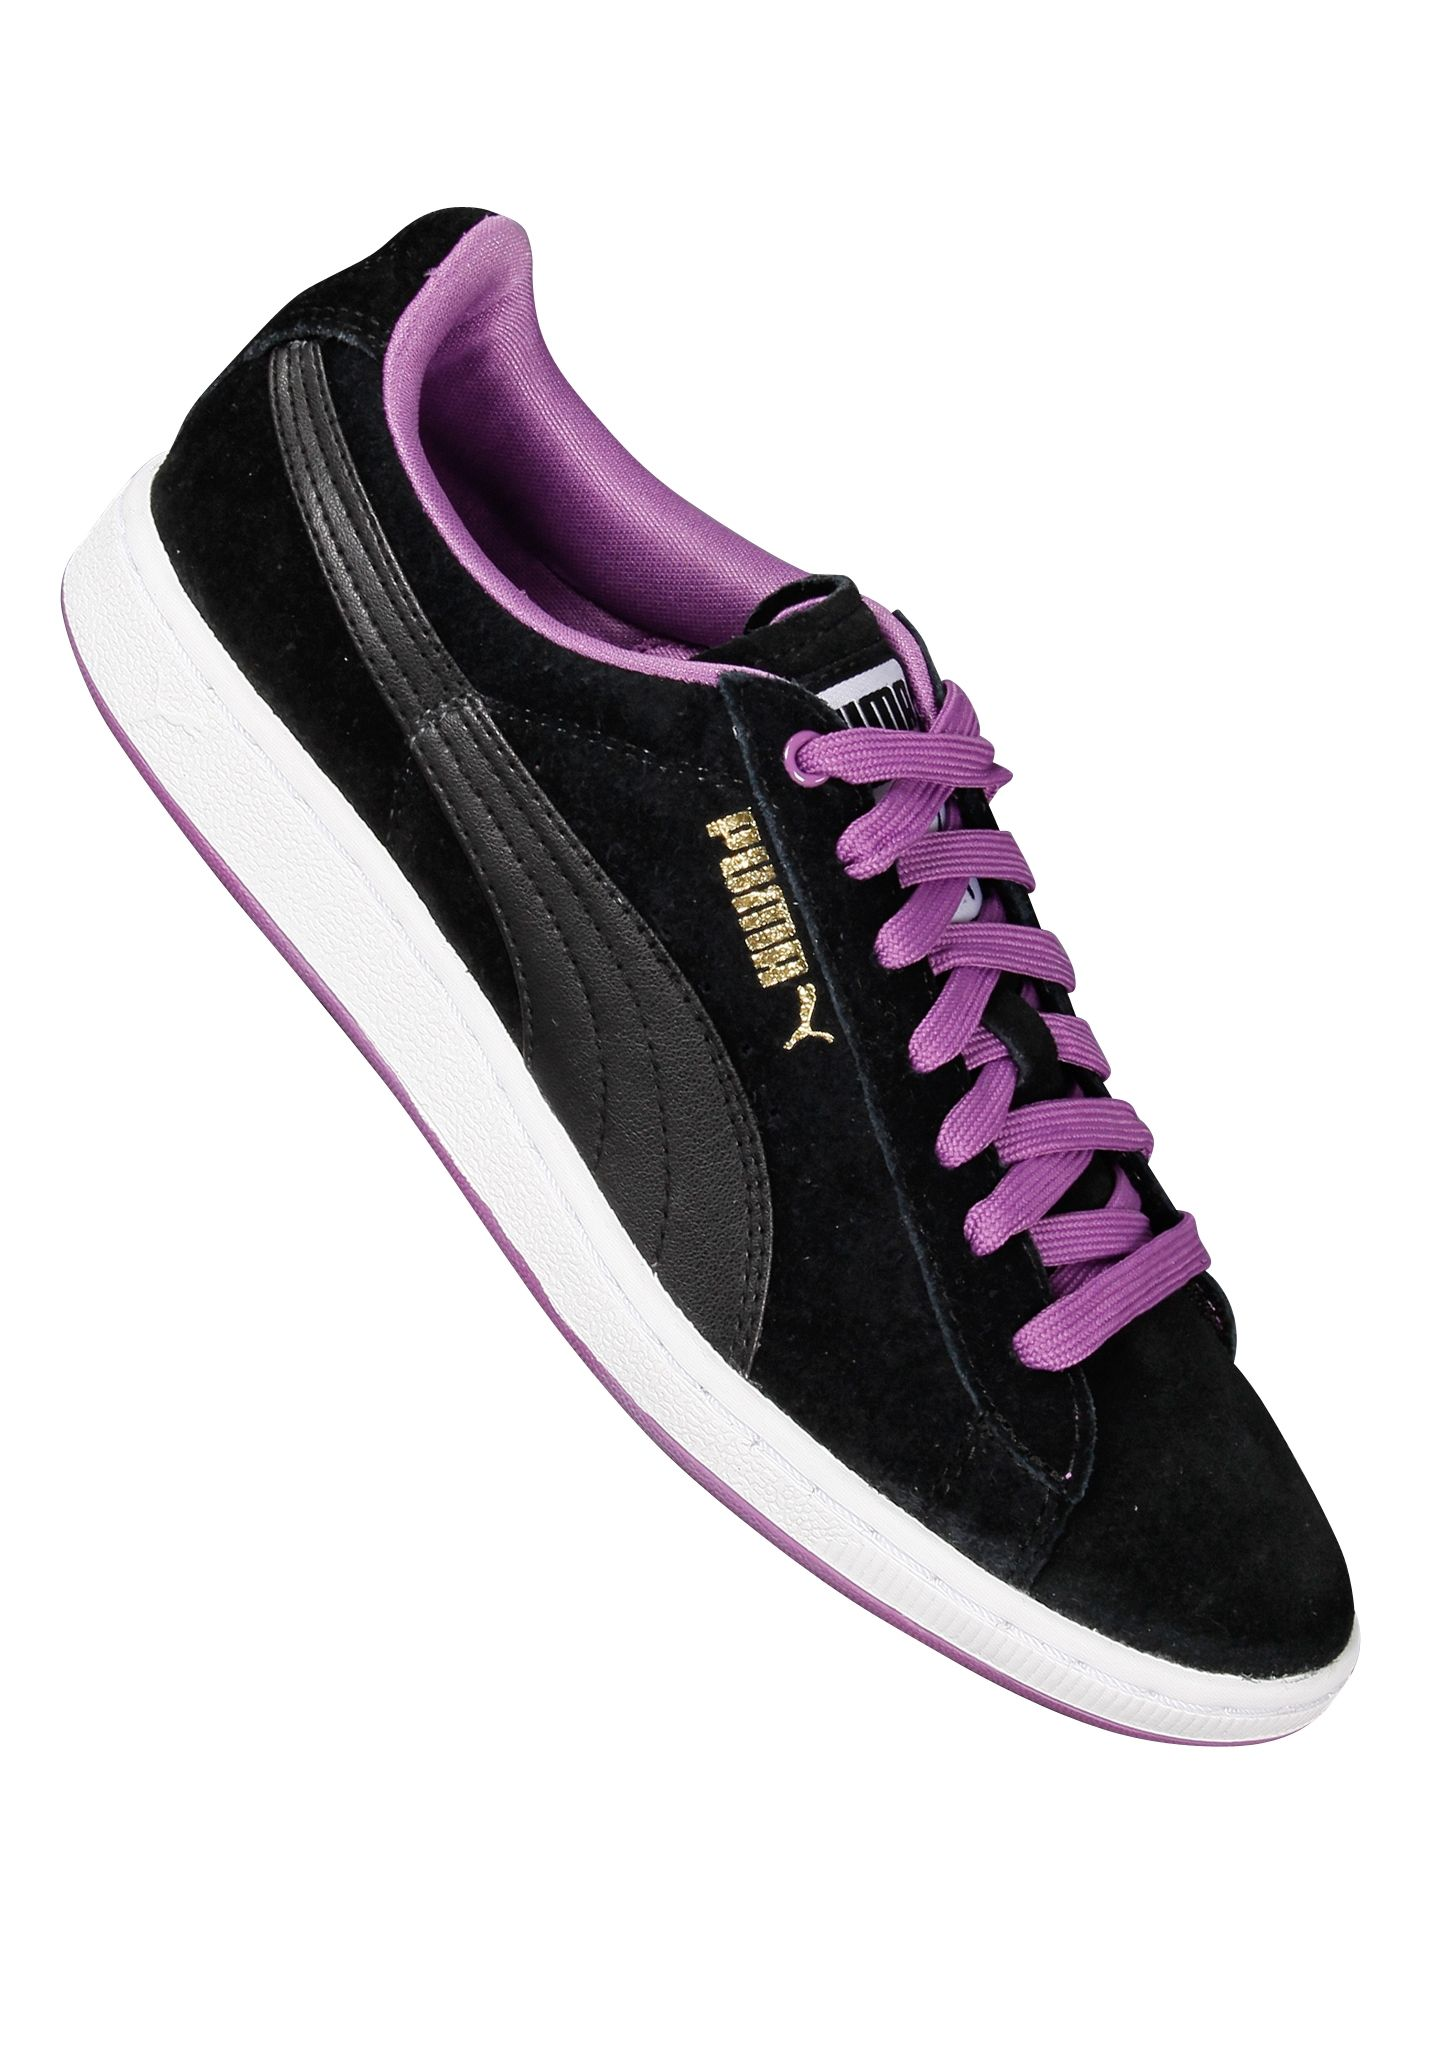 Puma Supersuede Eco - Sneakers for Women - Black - Planet Sports 4ef78a562